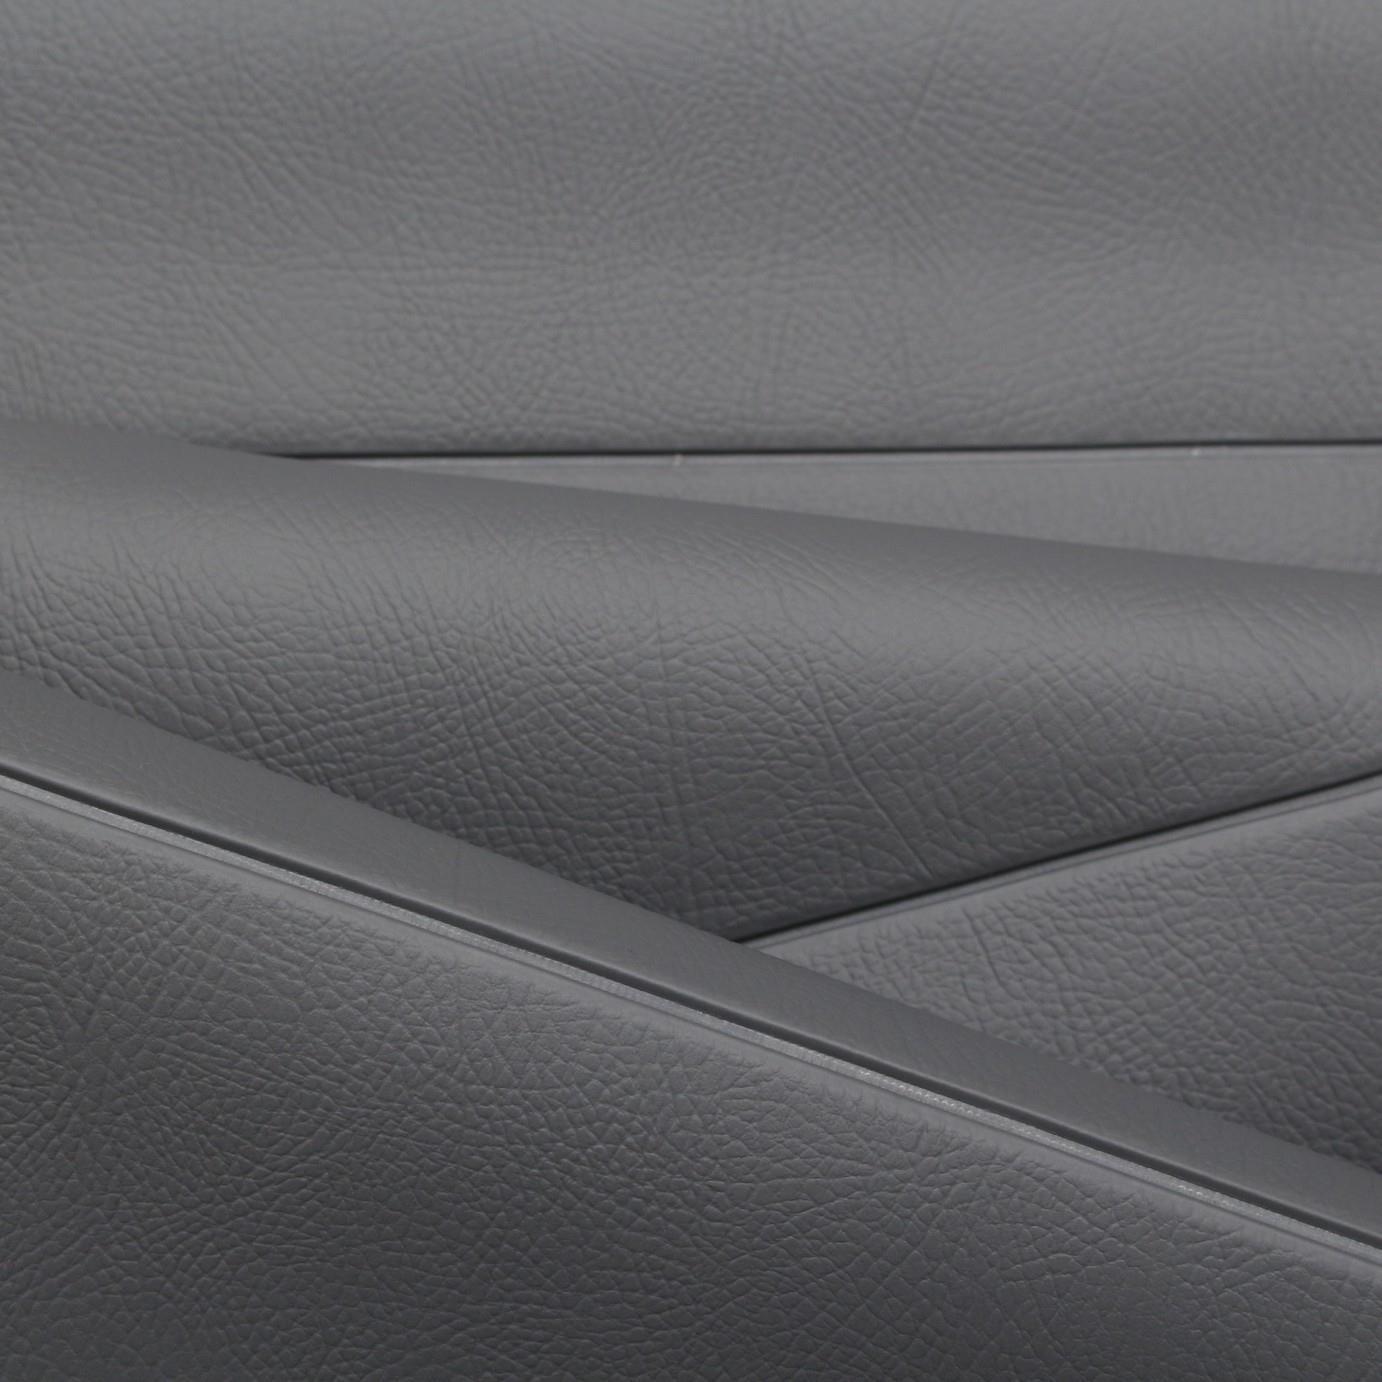 Fluted Vinyl Car Boat Pleated Upholstery Leather